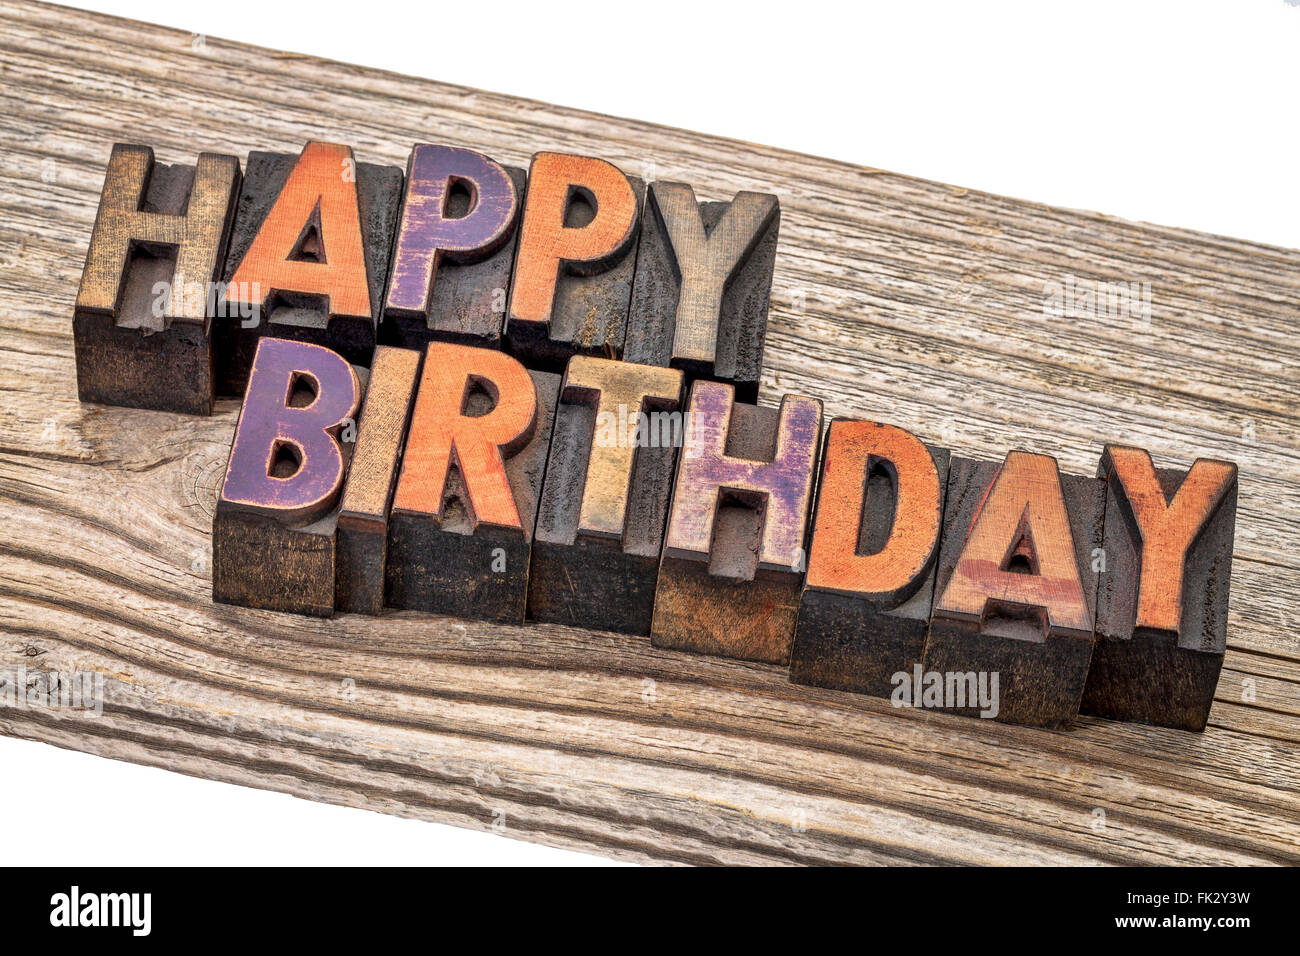 happy birthday greeting card - text  in vintage letterpress wood type printing blocks against a grained cedar plank - Stock Image